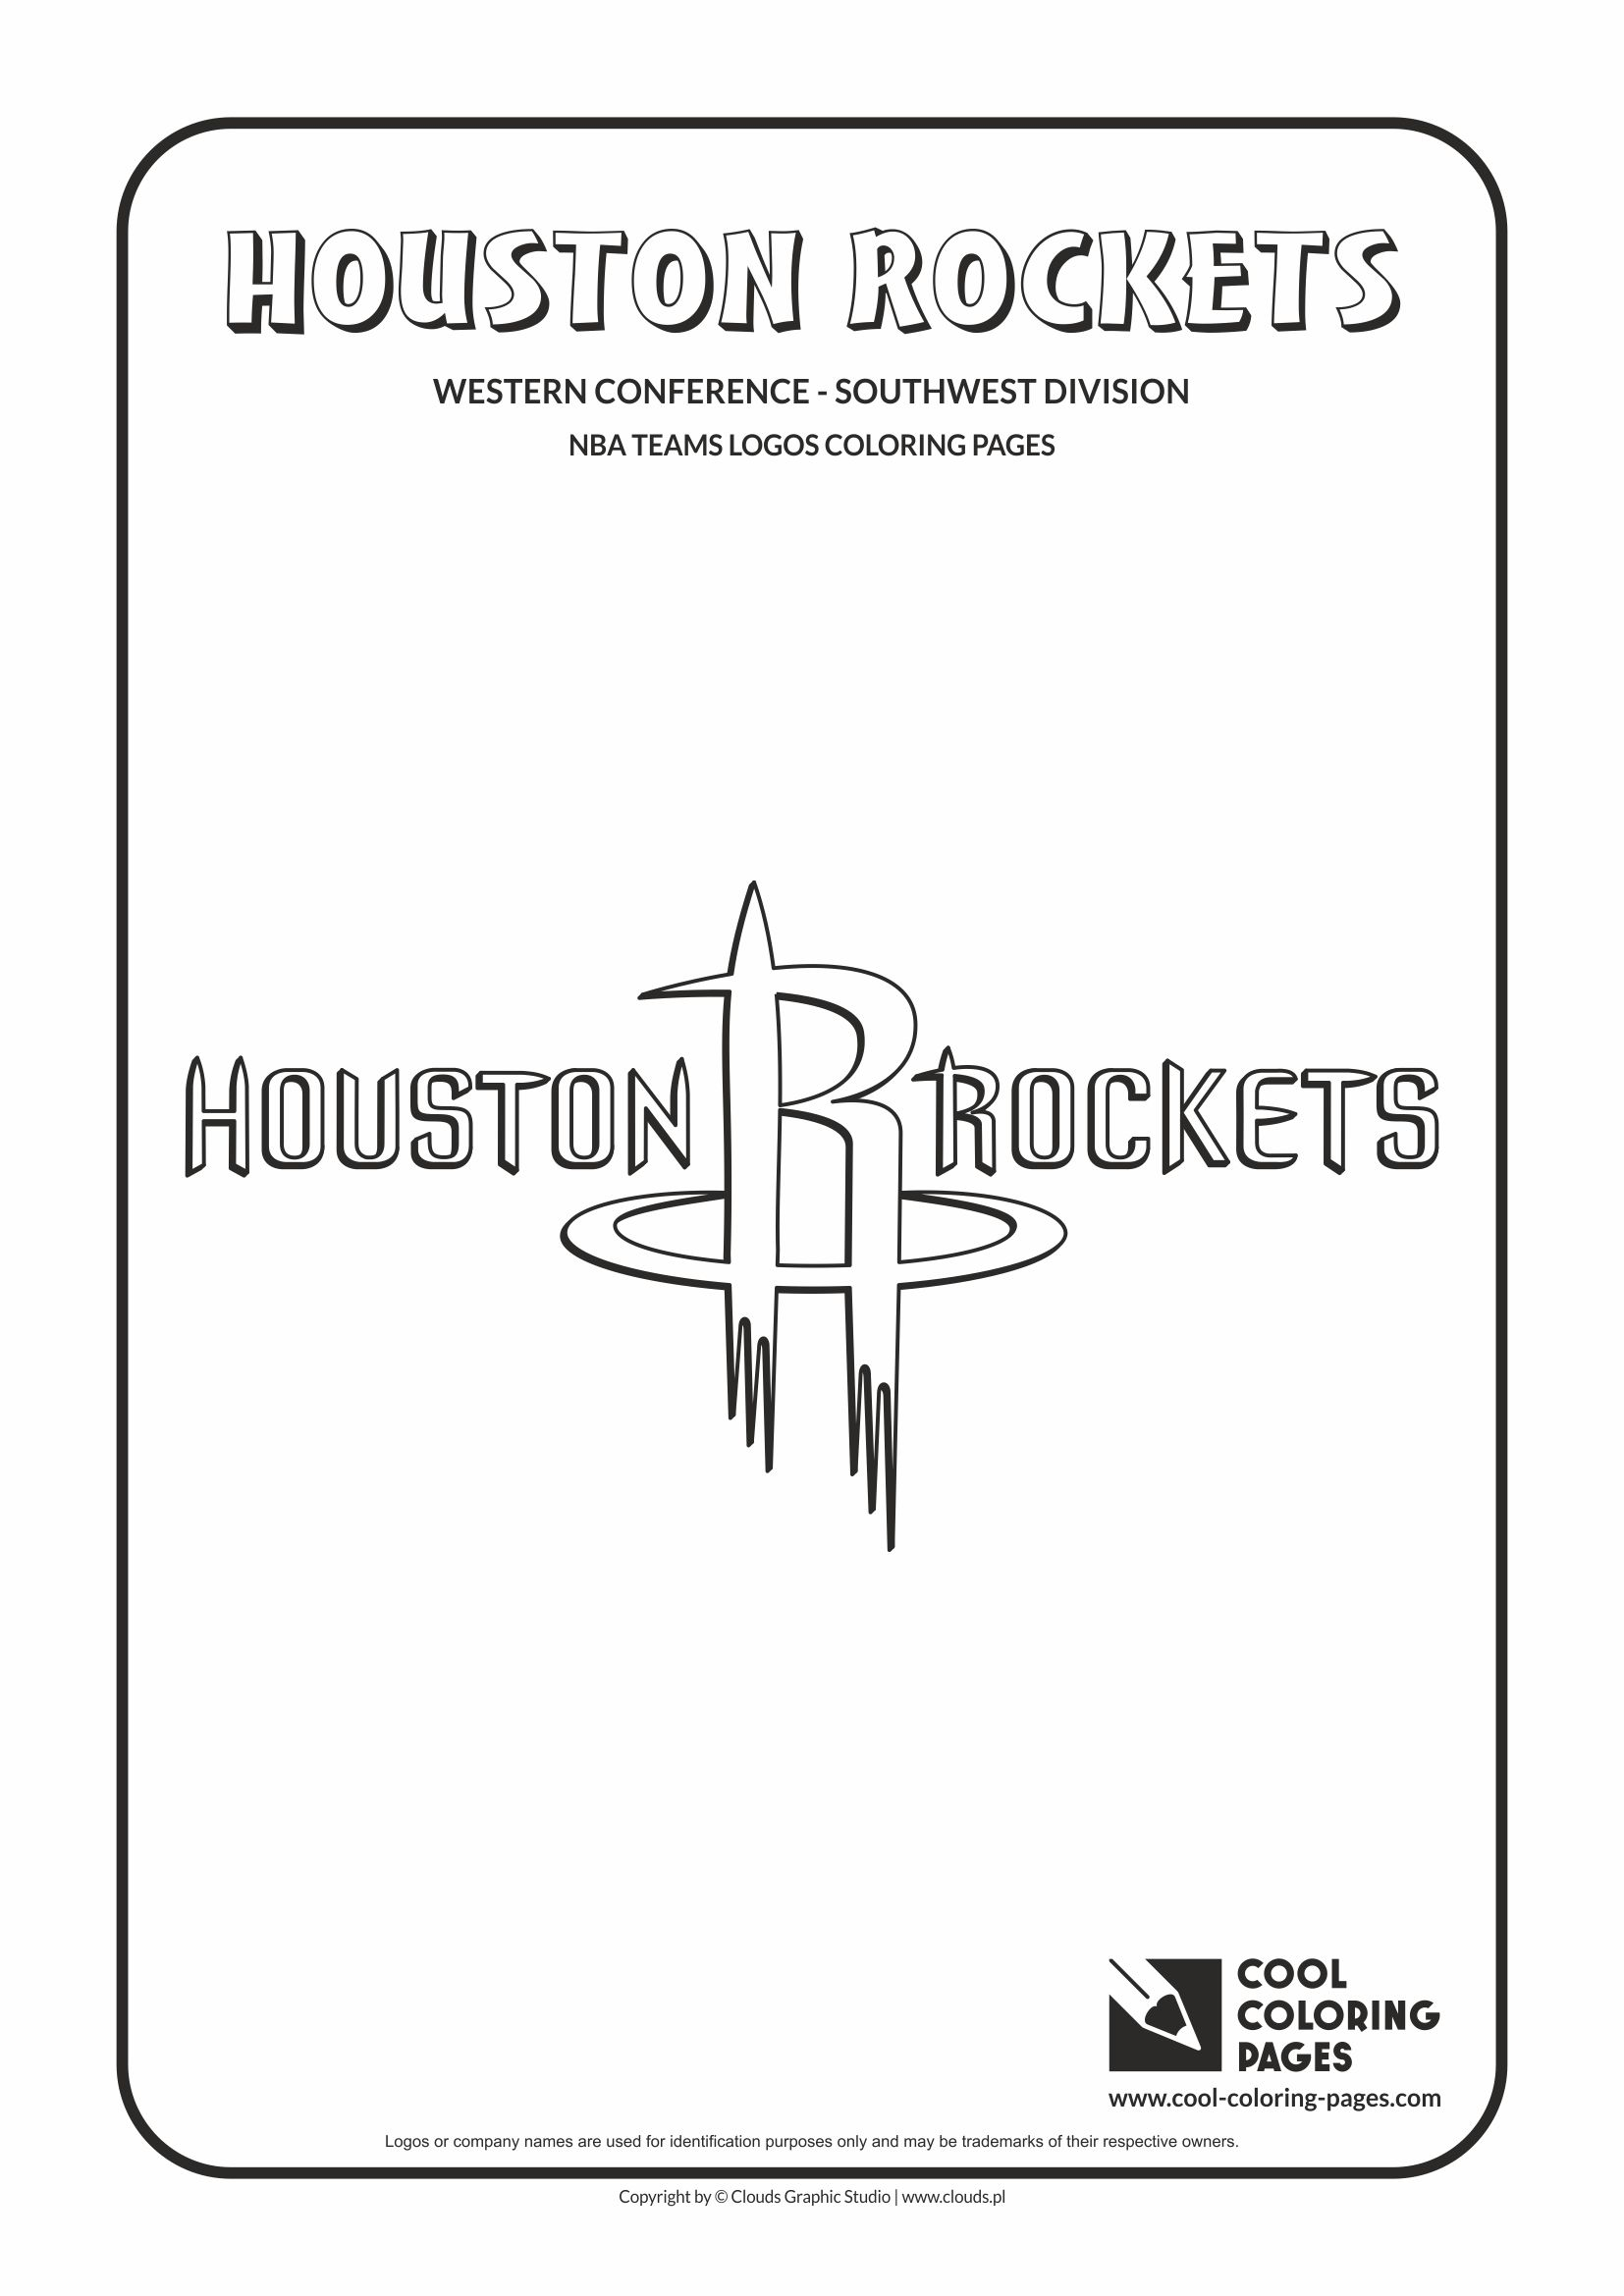 Cool Coloring Pages Nba Teams Logos Coloring Pages Cool Coloring